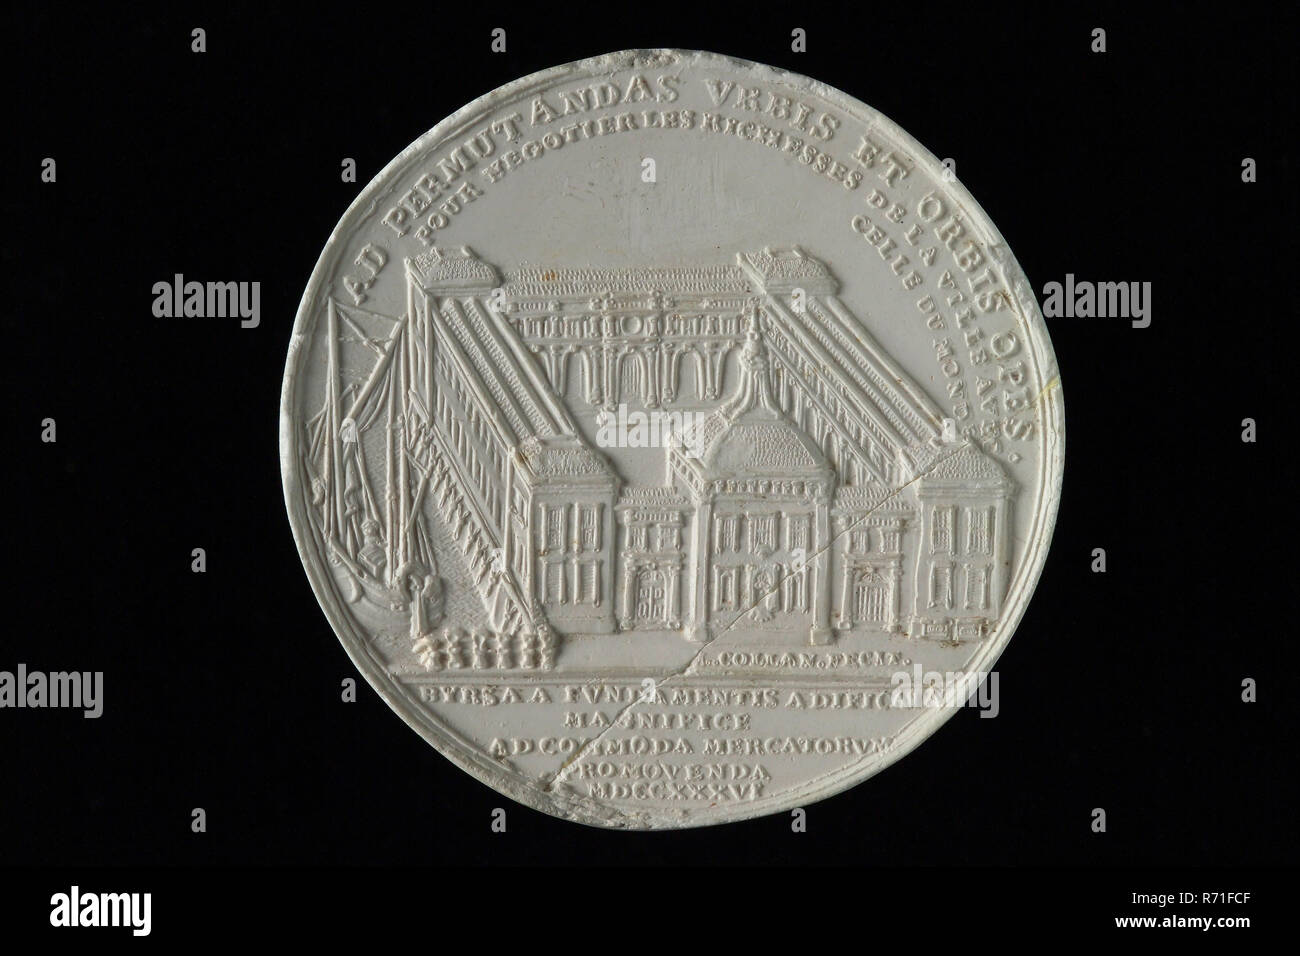 production: M. Holtzhey, One-sided gypsum print of reverse side of commemorative medal on the completion of the Rotterdam Stock Exchange, commemorative medal penning visual material gips, The exhibition center in nutshell Regard: ad permvtandas vrbis et orbis opes. (To trade the richnesses of the city and that of the world against each other) (in cut) bvrsa fvndamentis aedificata magnifice ad commoda mercatorvm PhD student mdccxxxvi. (The fair in the year 1736 built from the ground up to the ease of merchants) heraldry Rotterdam trade trade trade fishery city profile allegory Adriaan van der W - Stock Image